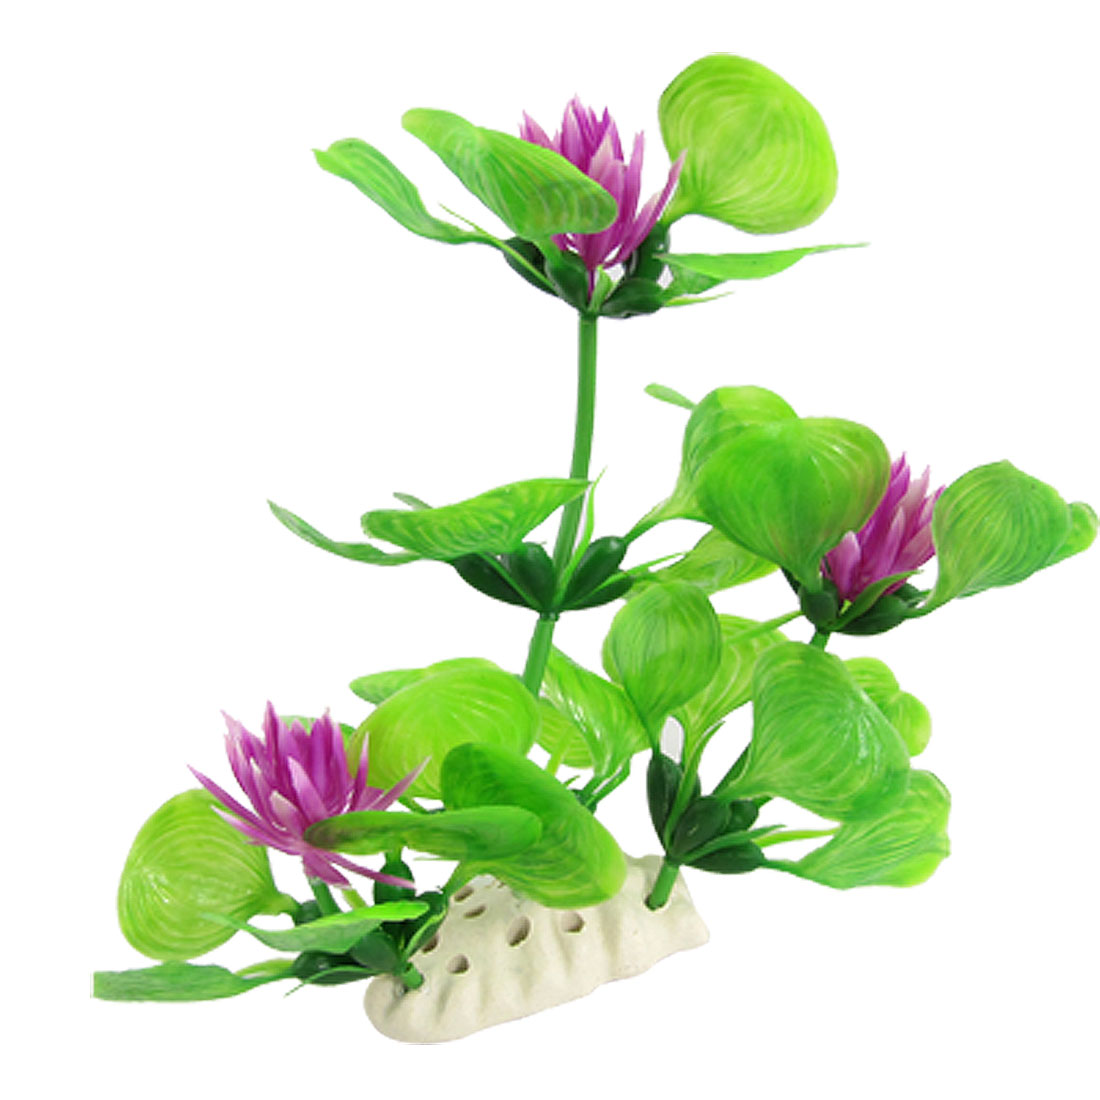 Purple Flower Plastic Plant Oranment Green for Aquarium